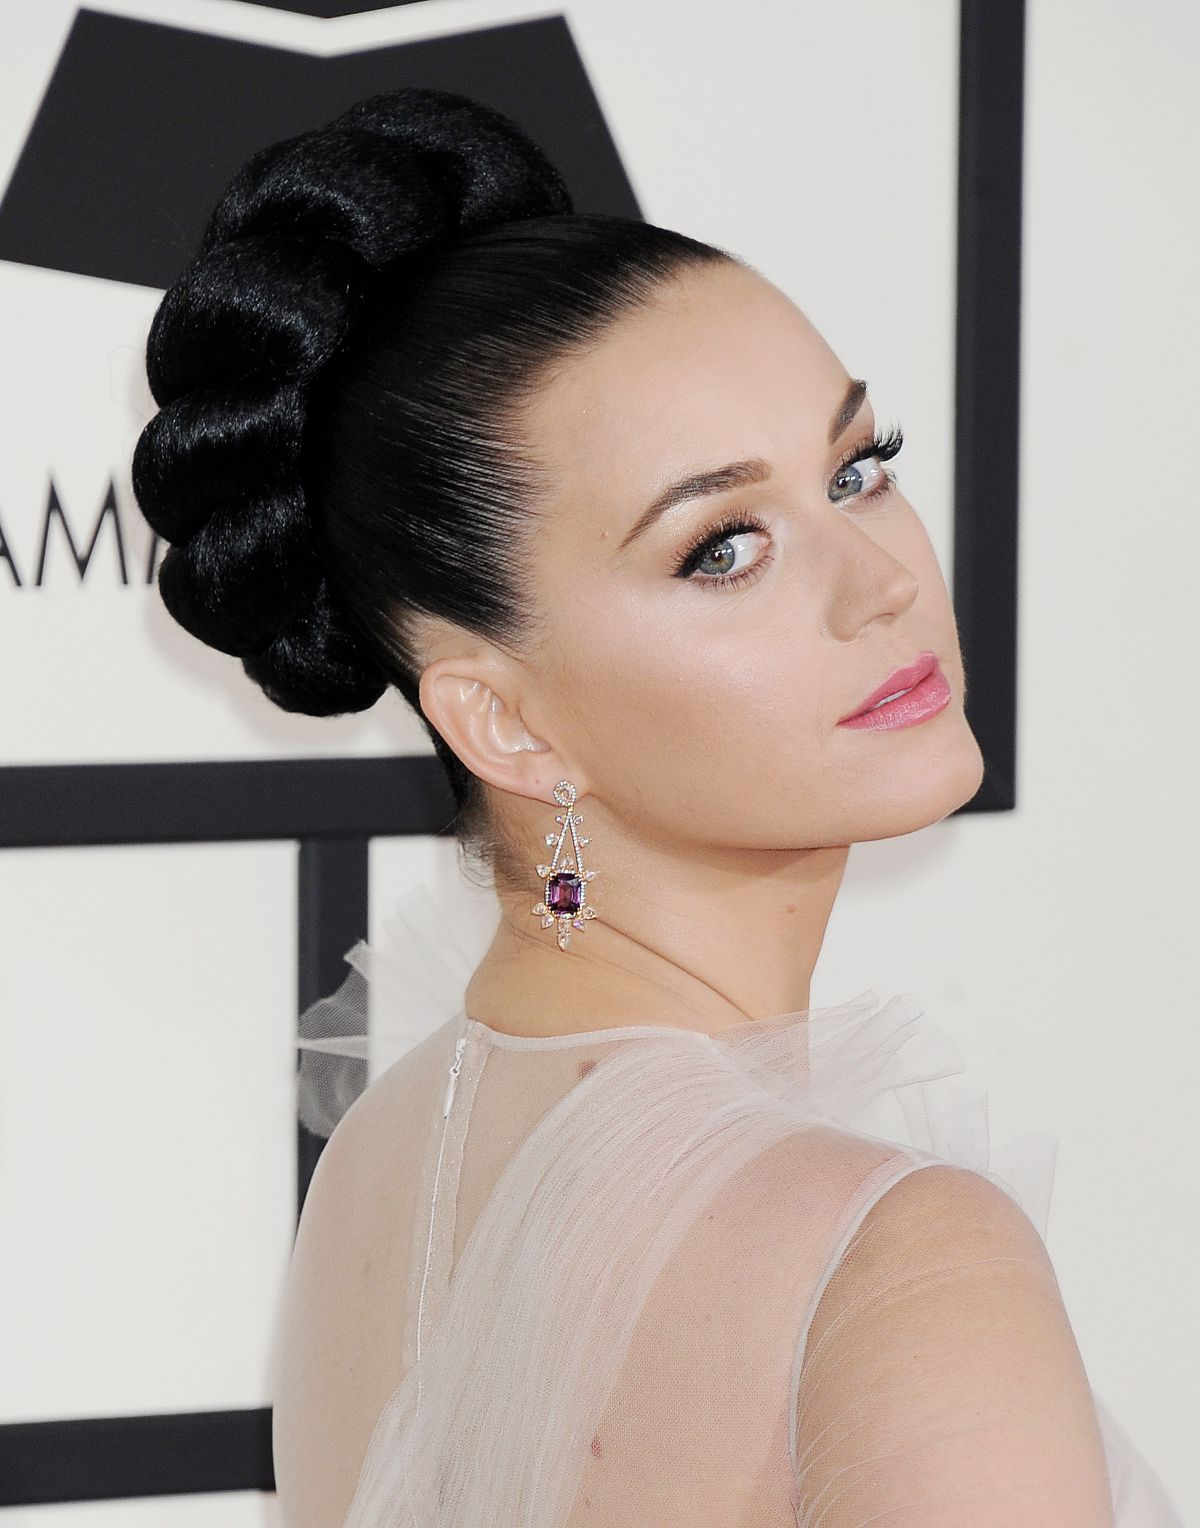 katy perry dating 2014 Even when perry began dating swift's ex john mayer  — katy perry (@katyperry) september 9, 2014  which will include both perry and minaj katy spills to.